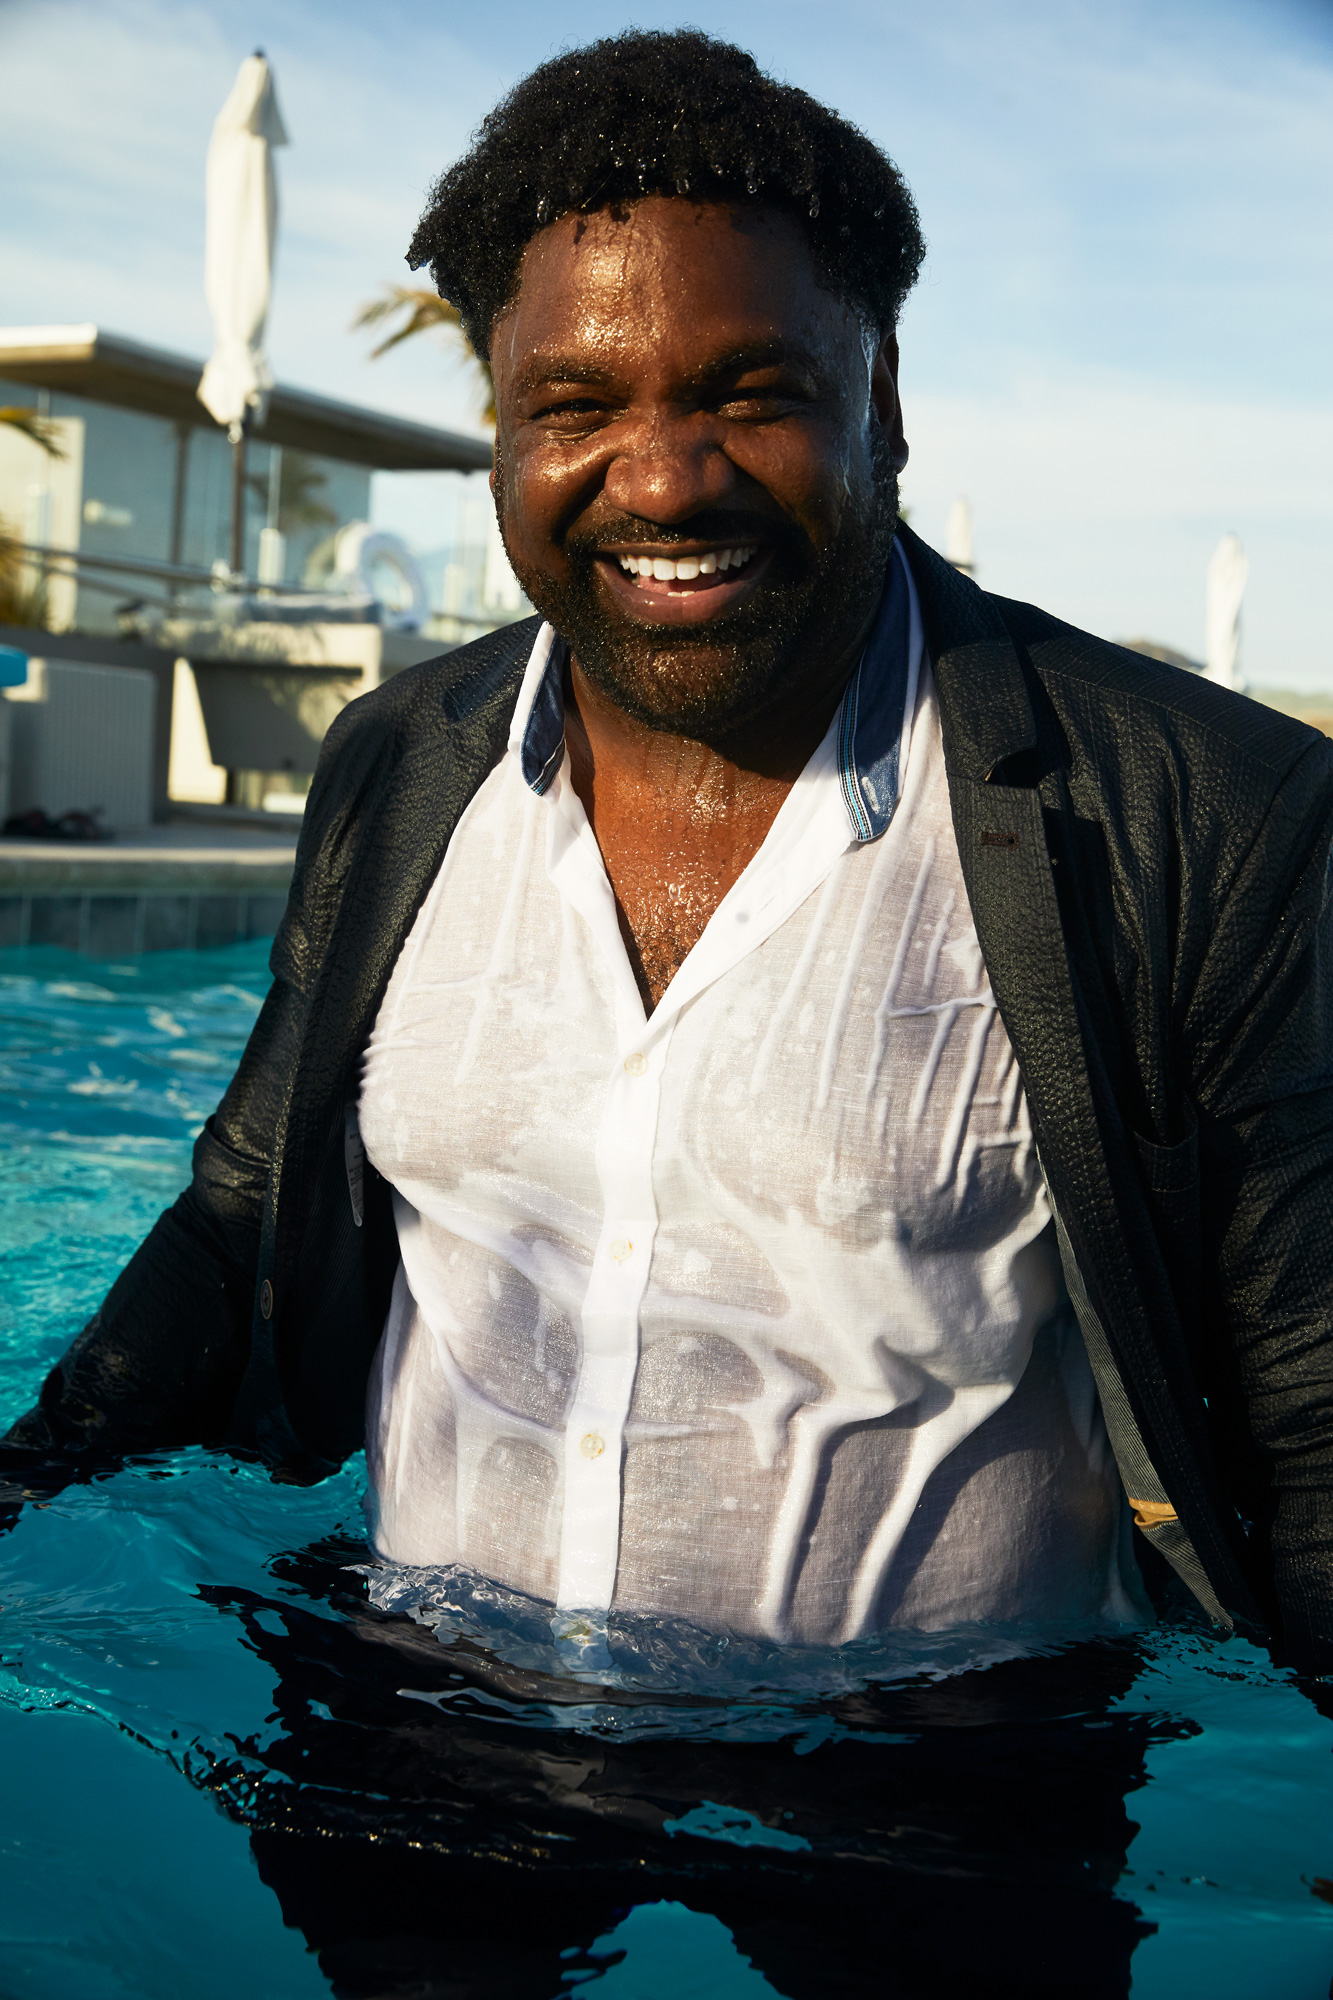 hbo ballers carl mcdowell photographed in los angeles by jeff nelson